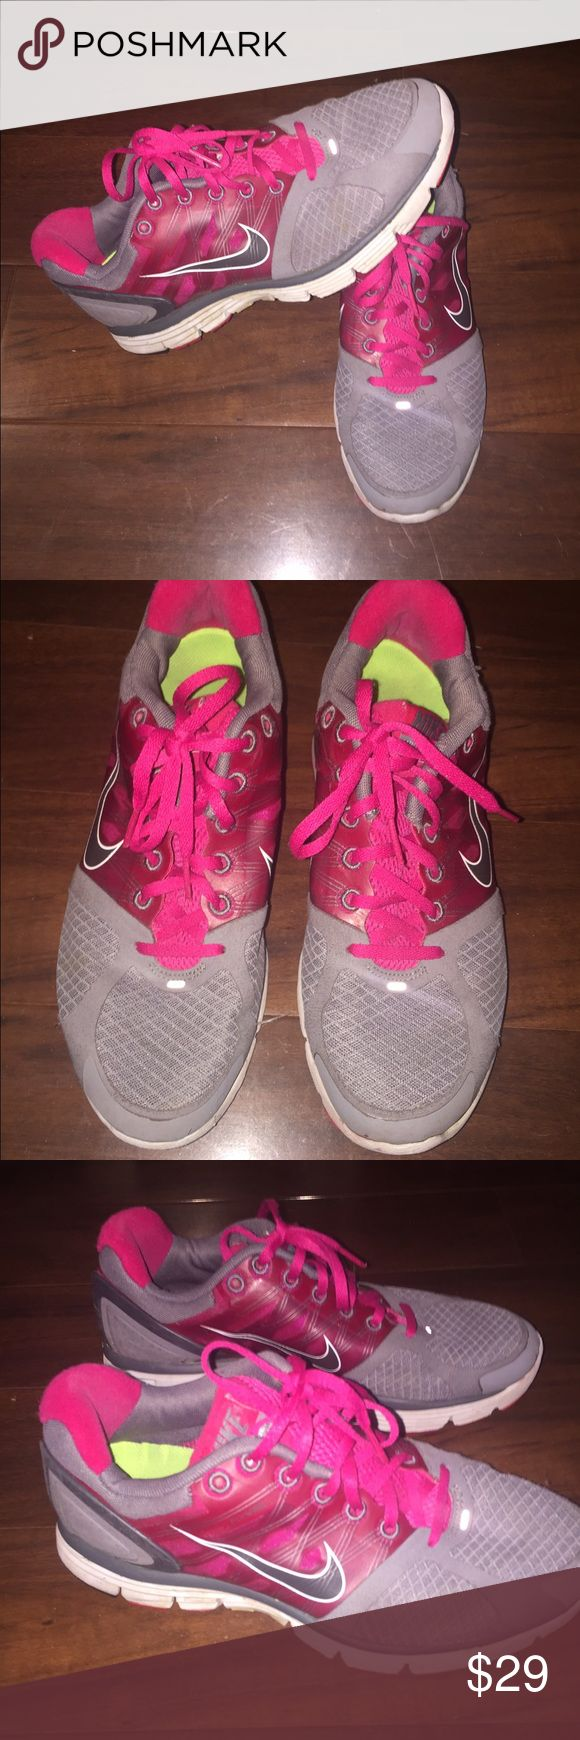 Nike Lunarglide 2 Women's 9.5 Pink/Burgundy/gray In good condition! Women's 9.5 lunarglide 2 Previously worn. Nike Shoes Athletic Shoes